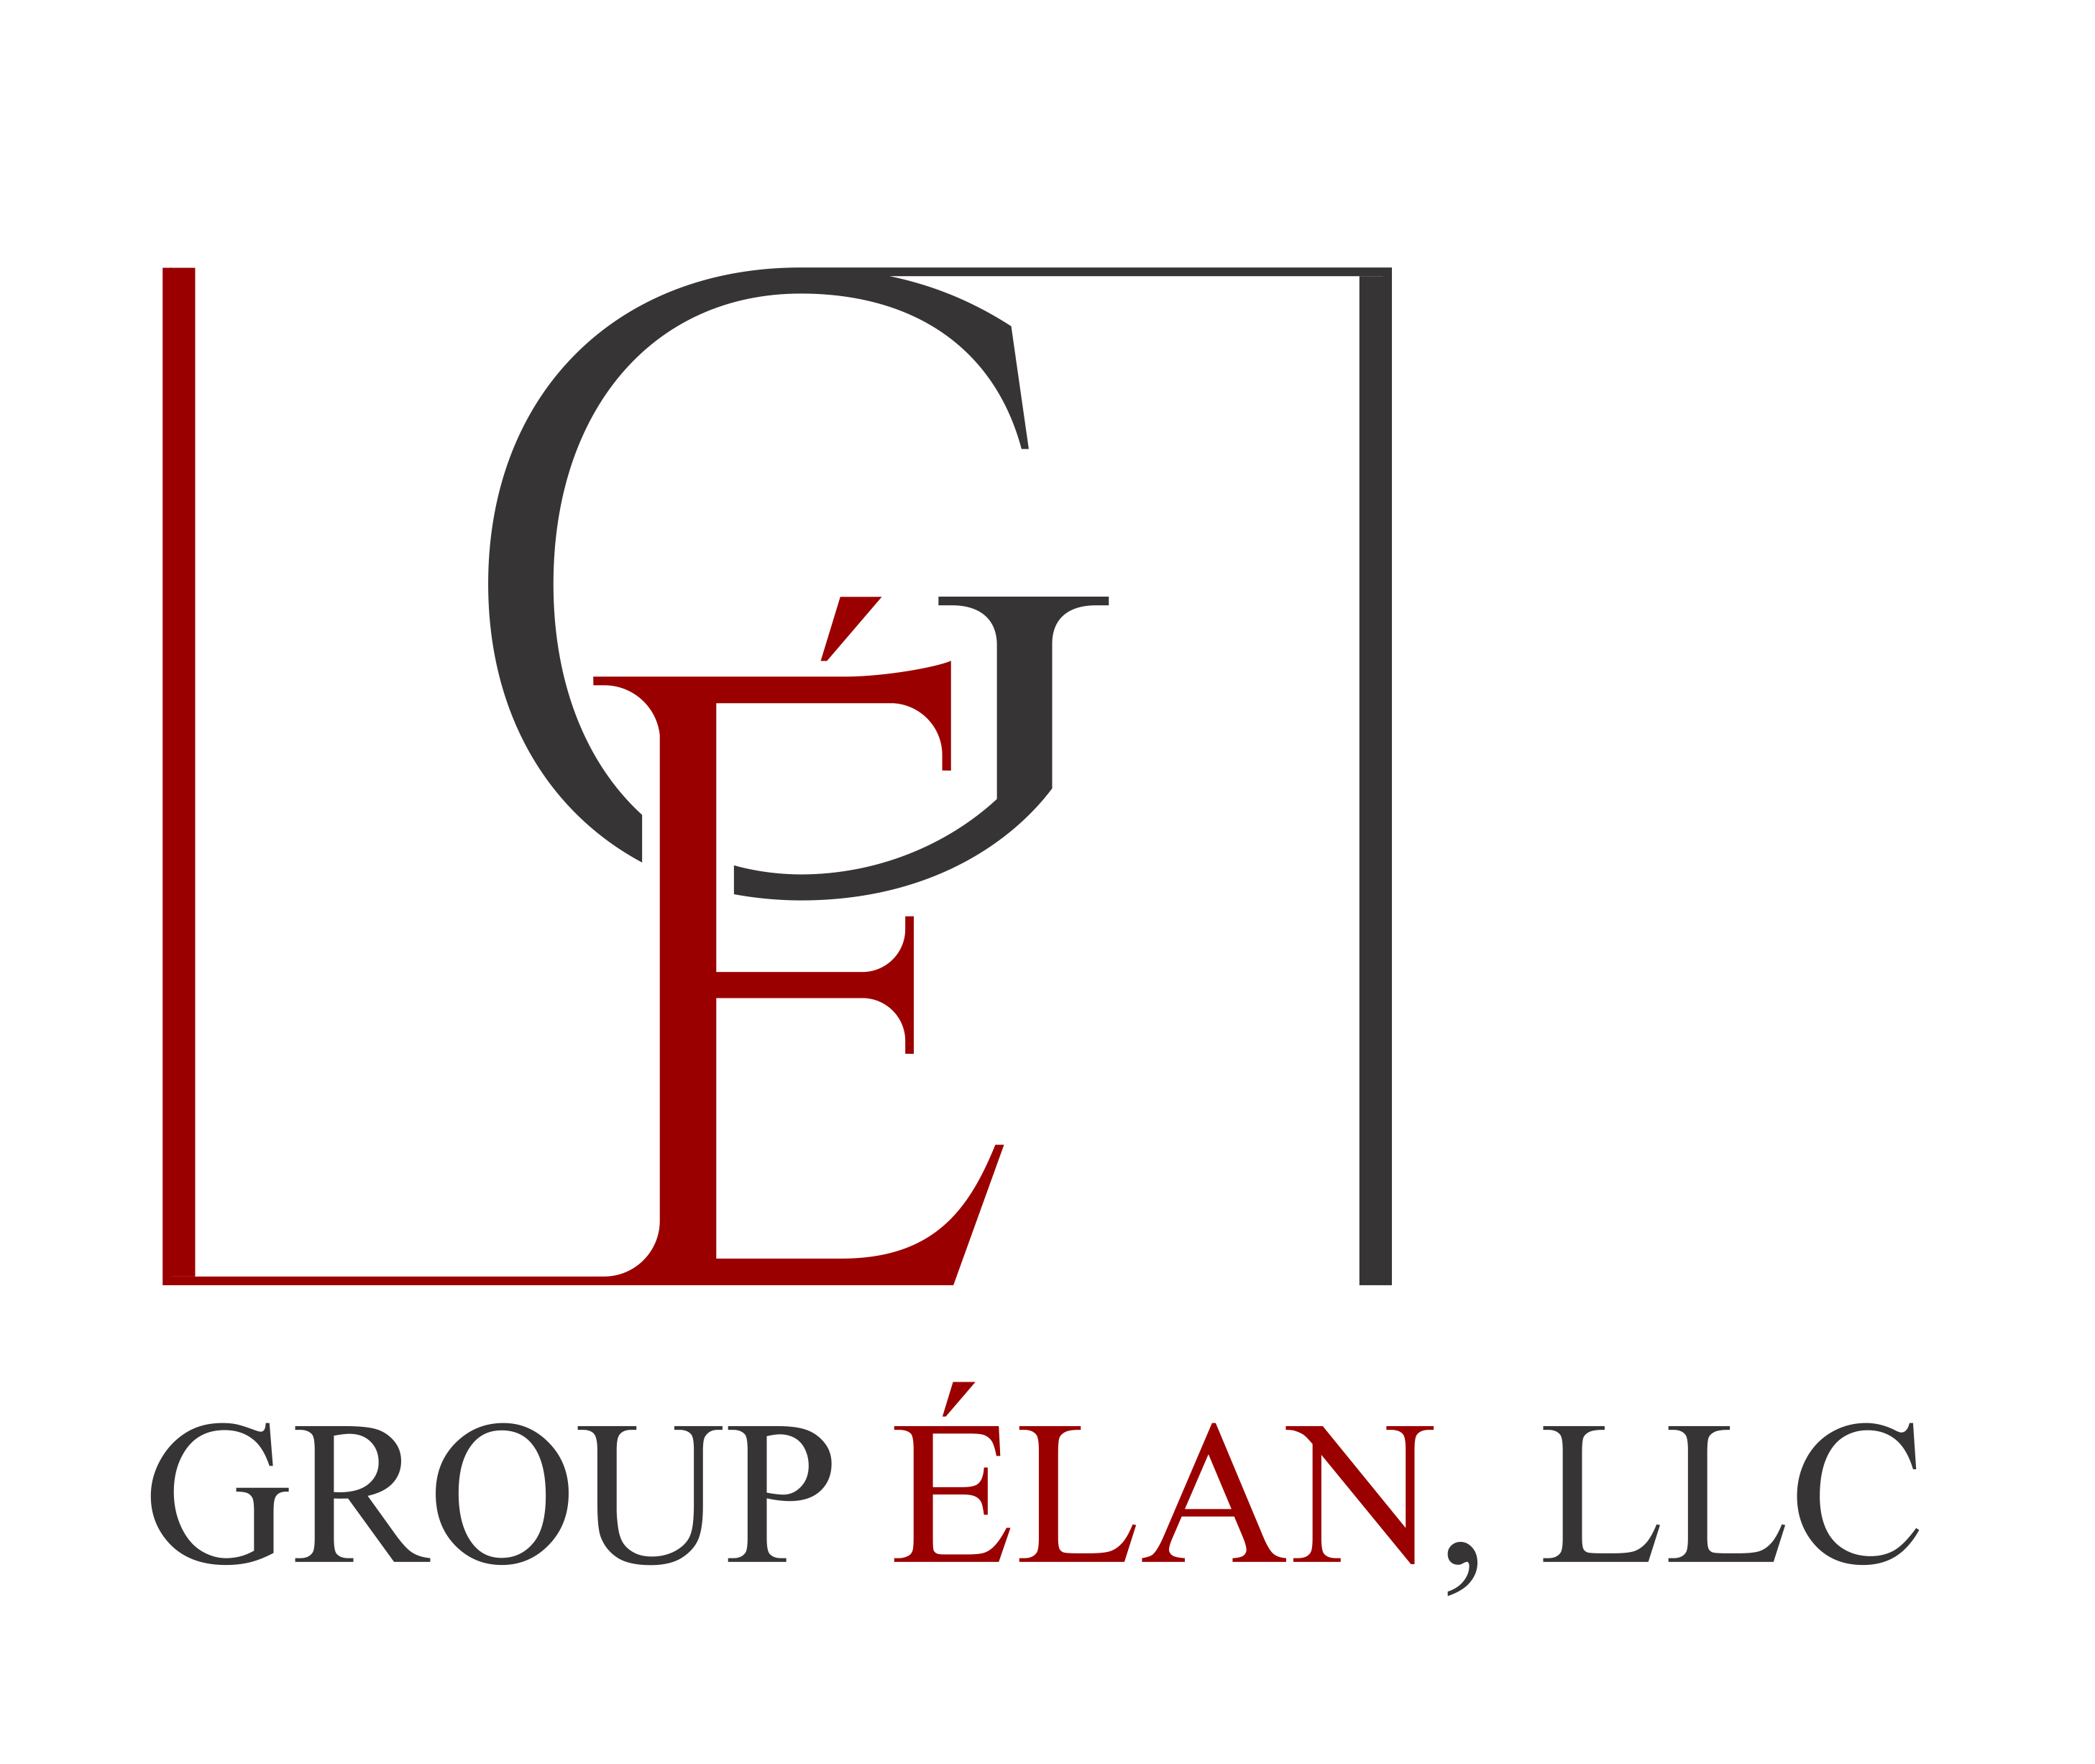 Evidence clipart proof read. Of funds group elan